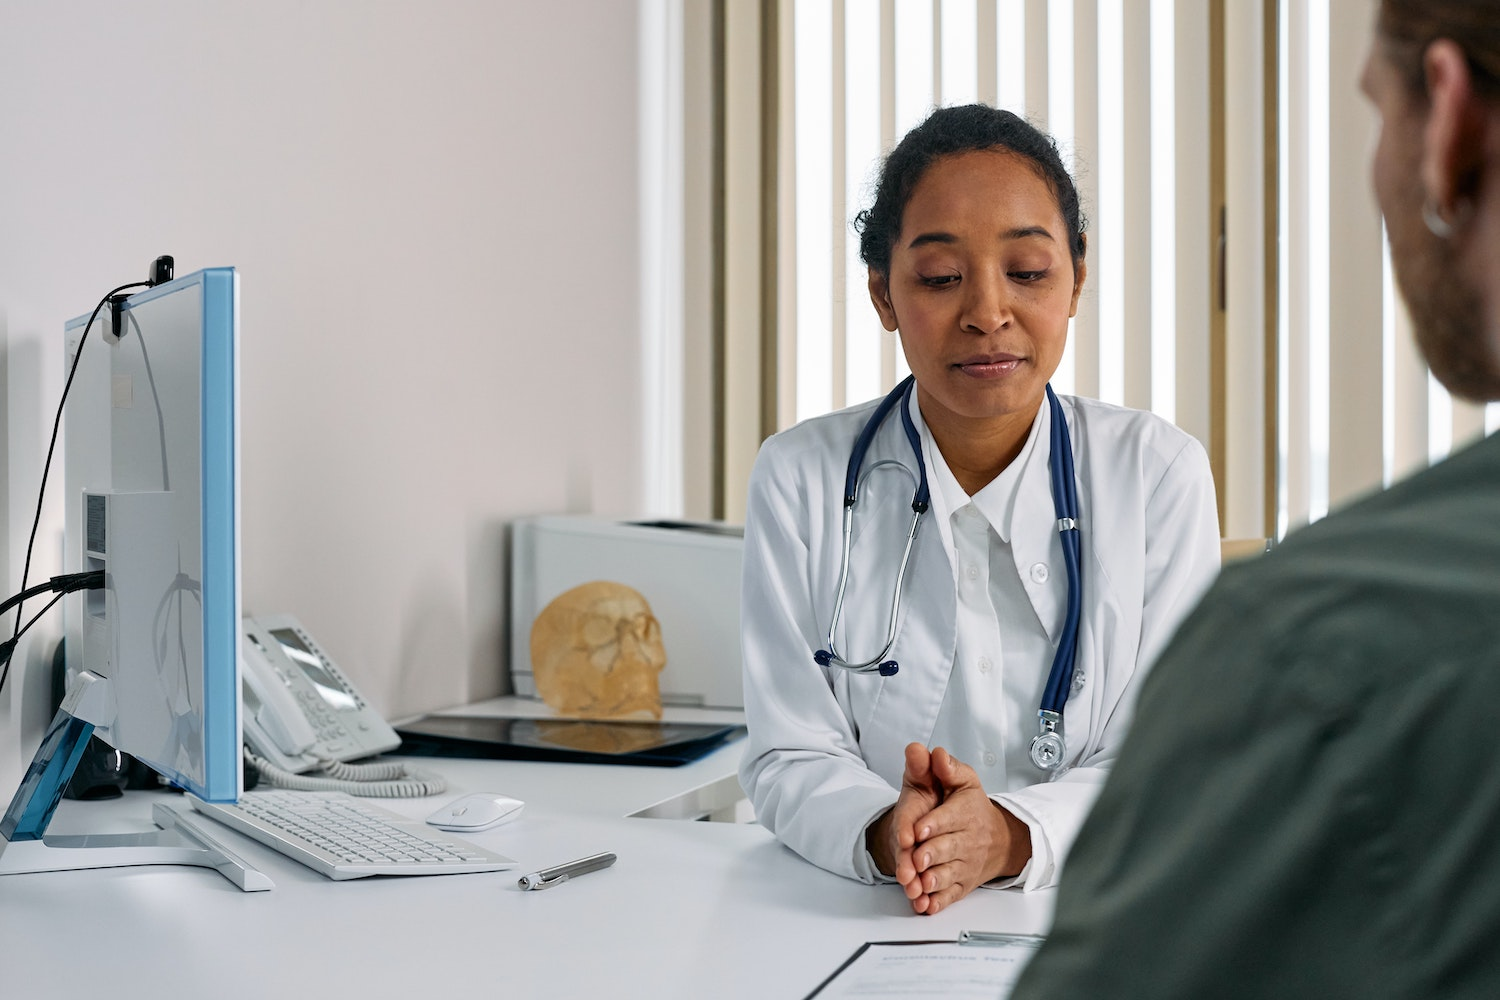 Female doctor sitting at her desk with a patient